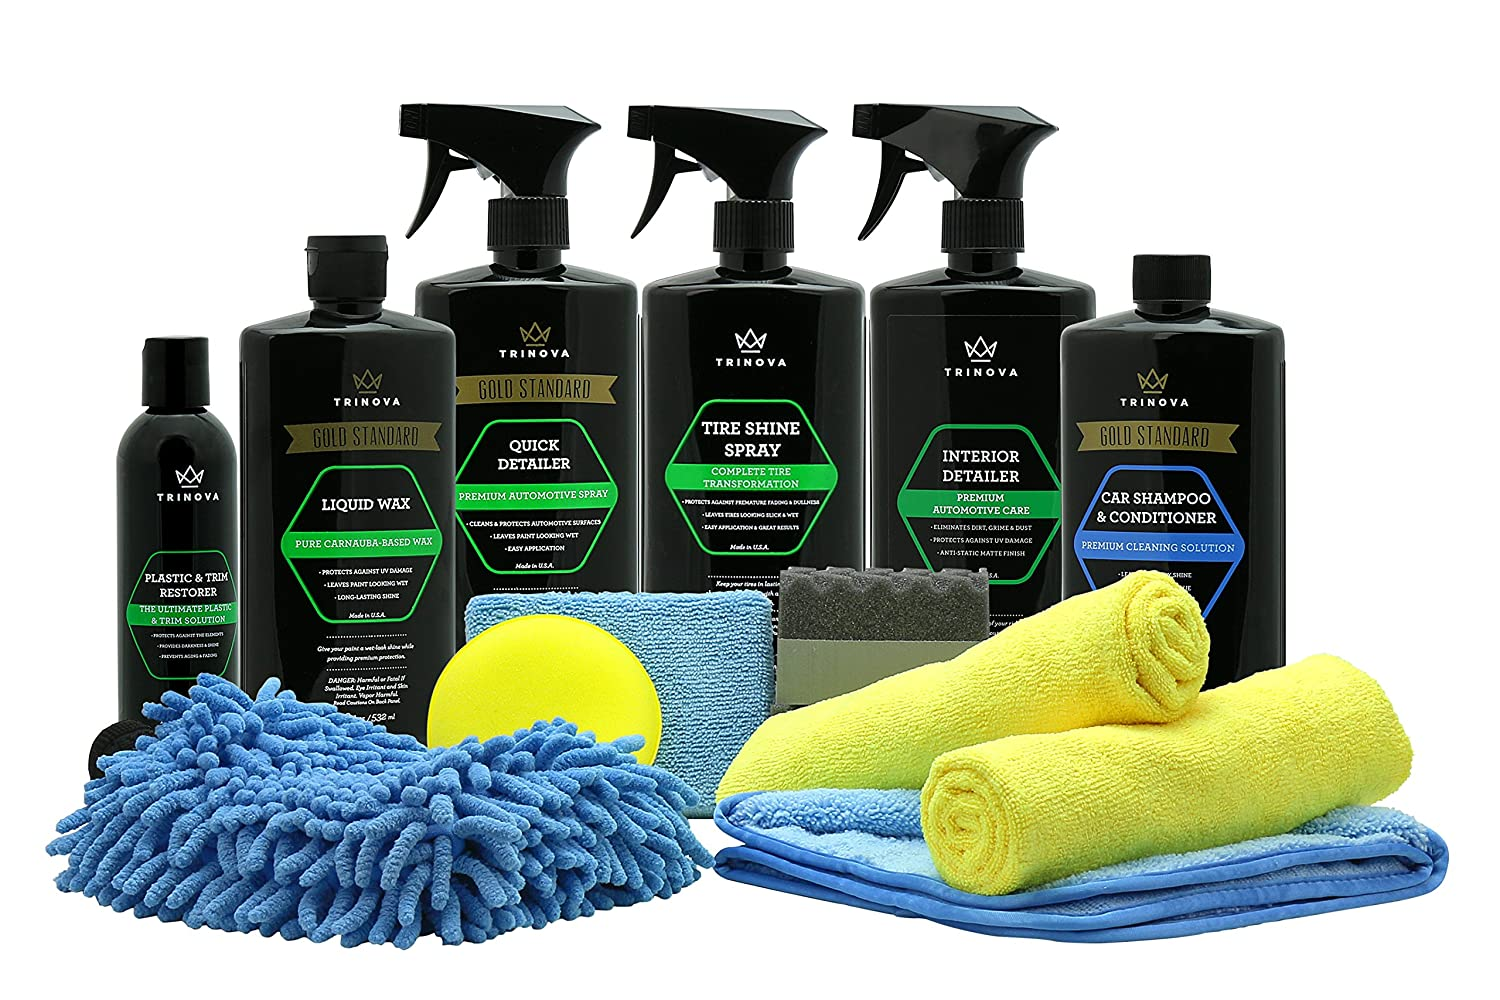 Car Wash Kit Complete Detailing Supplies For Cleaning. Soap, Wax, Tire Shine, Trim Restorer, Wash Mitt, Applicator, Microfiber Towel, Best Value To Care For Truck. Tri Nova. by Tri Nova